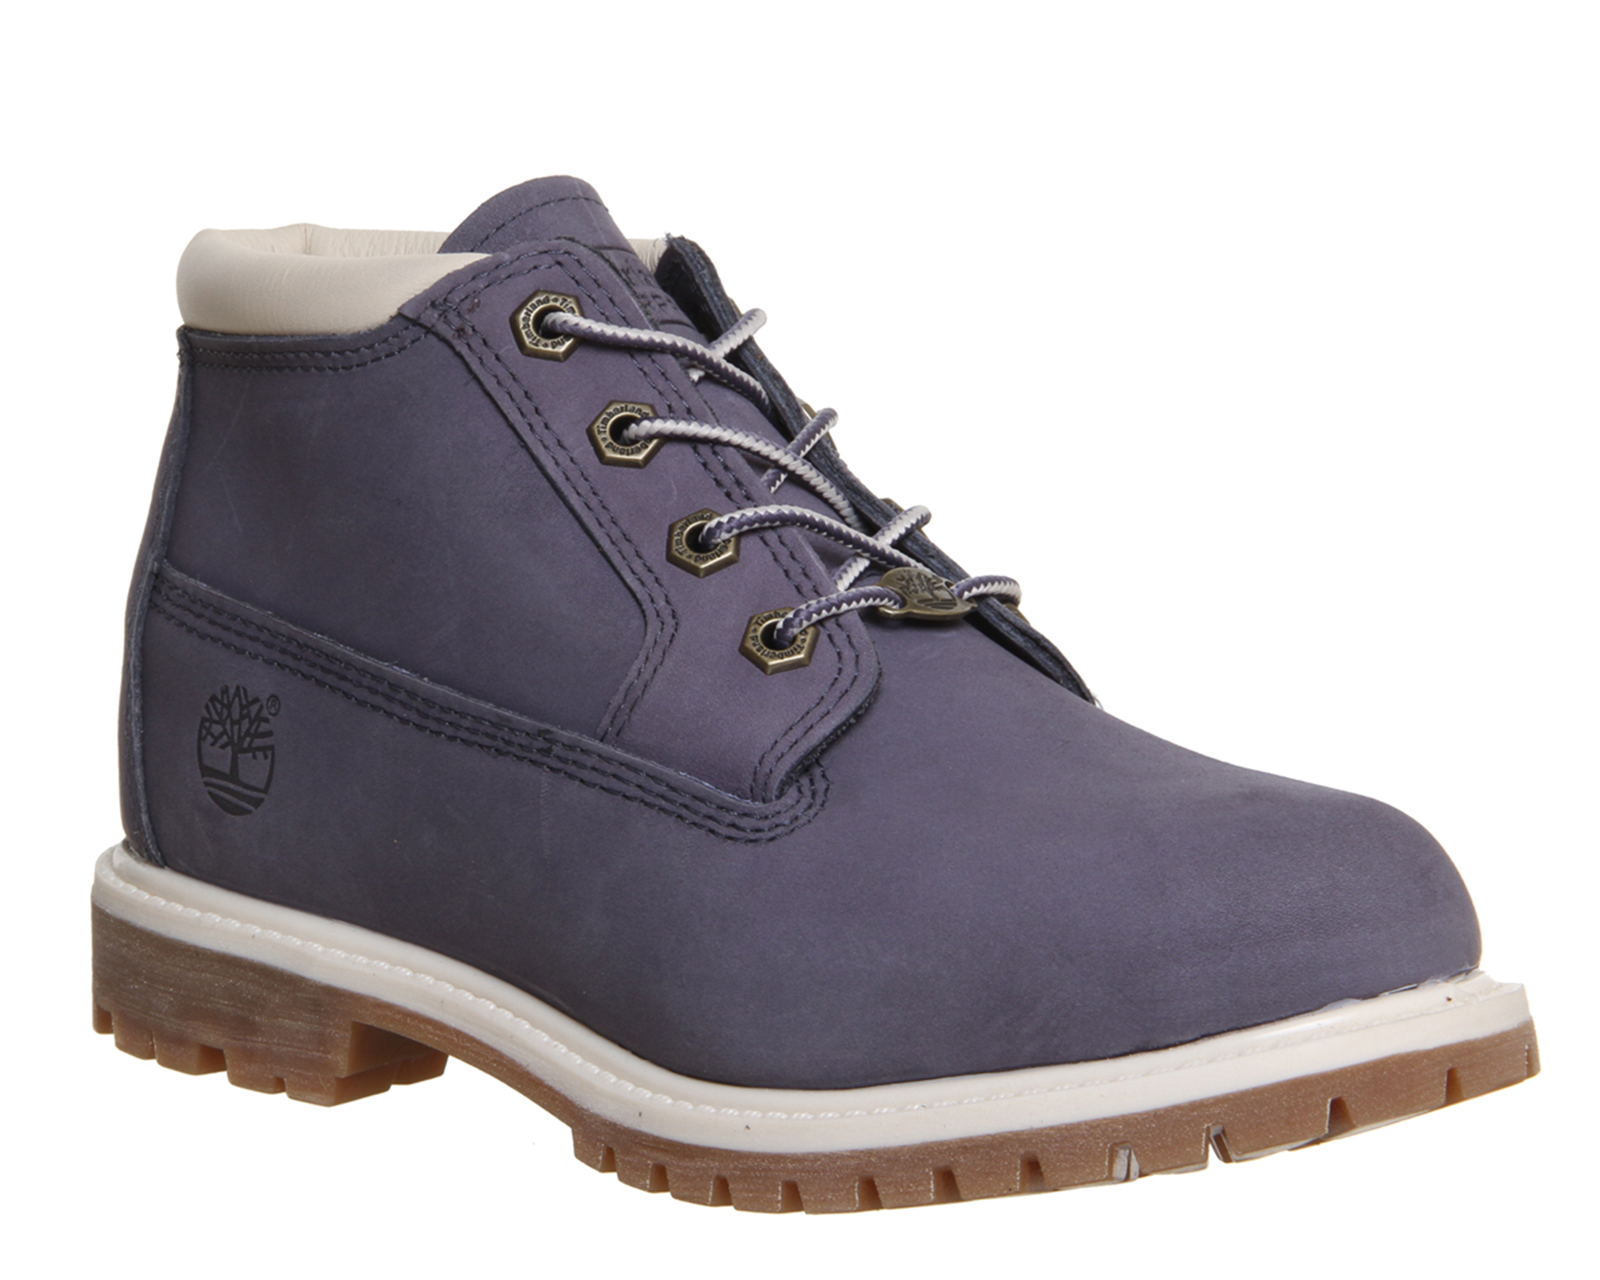 timberland nellie waterproof chukka boots grey